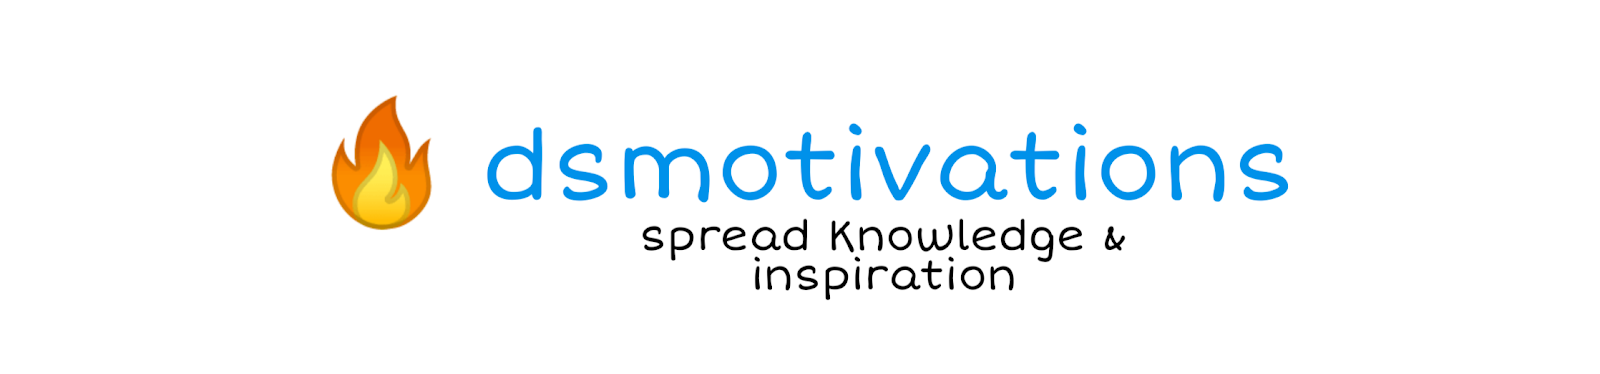 Dsmotivations - Spread Knowledge & Inspiration.